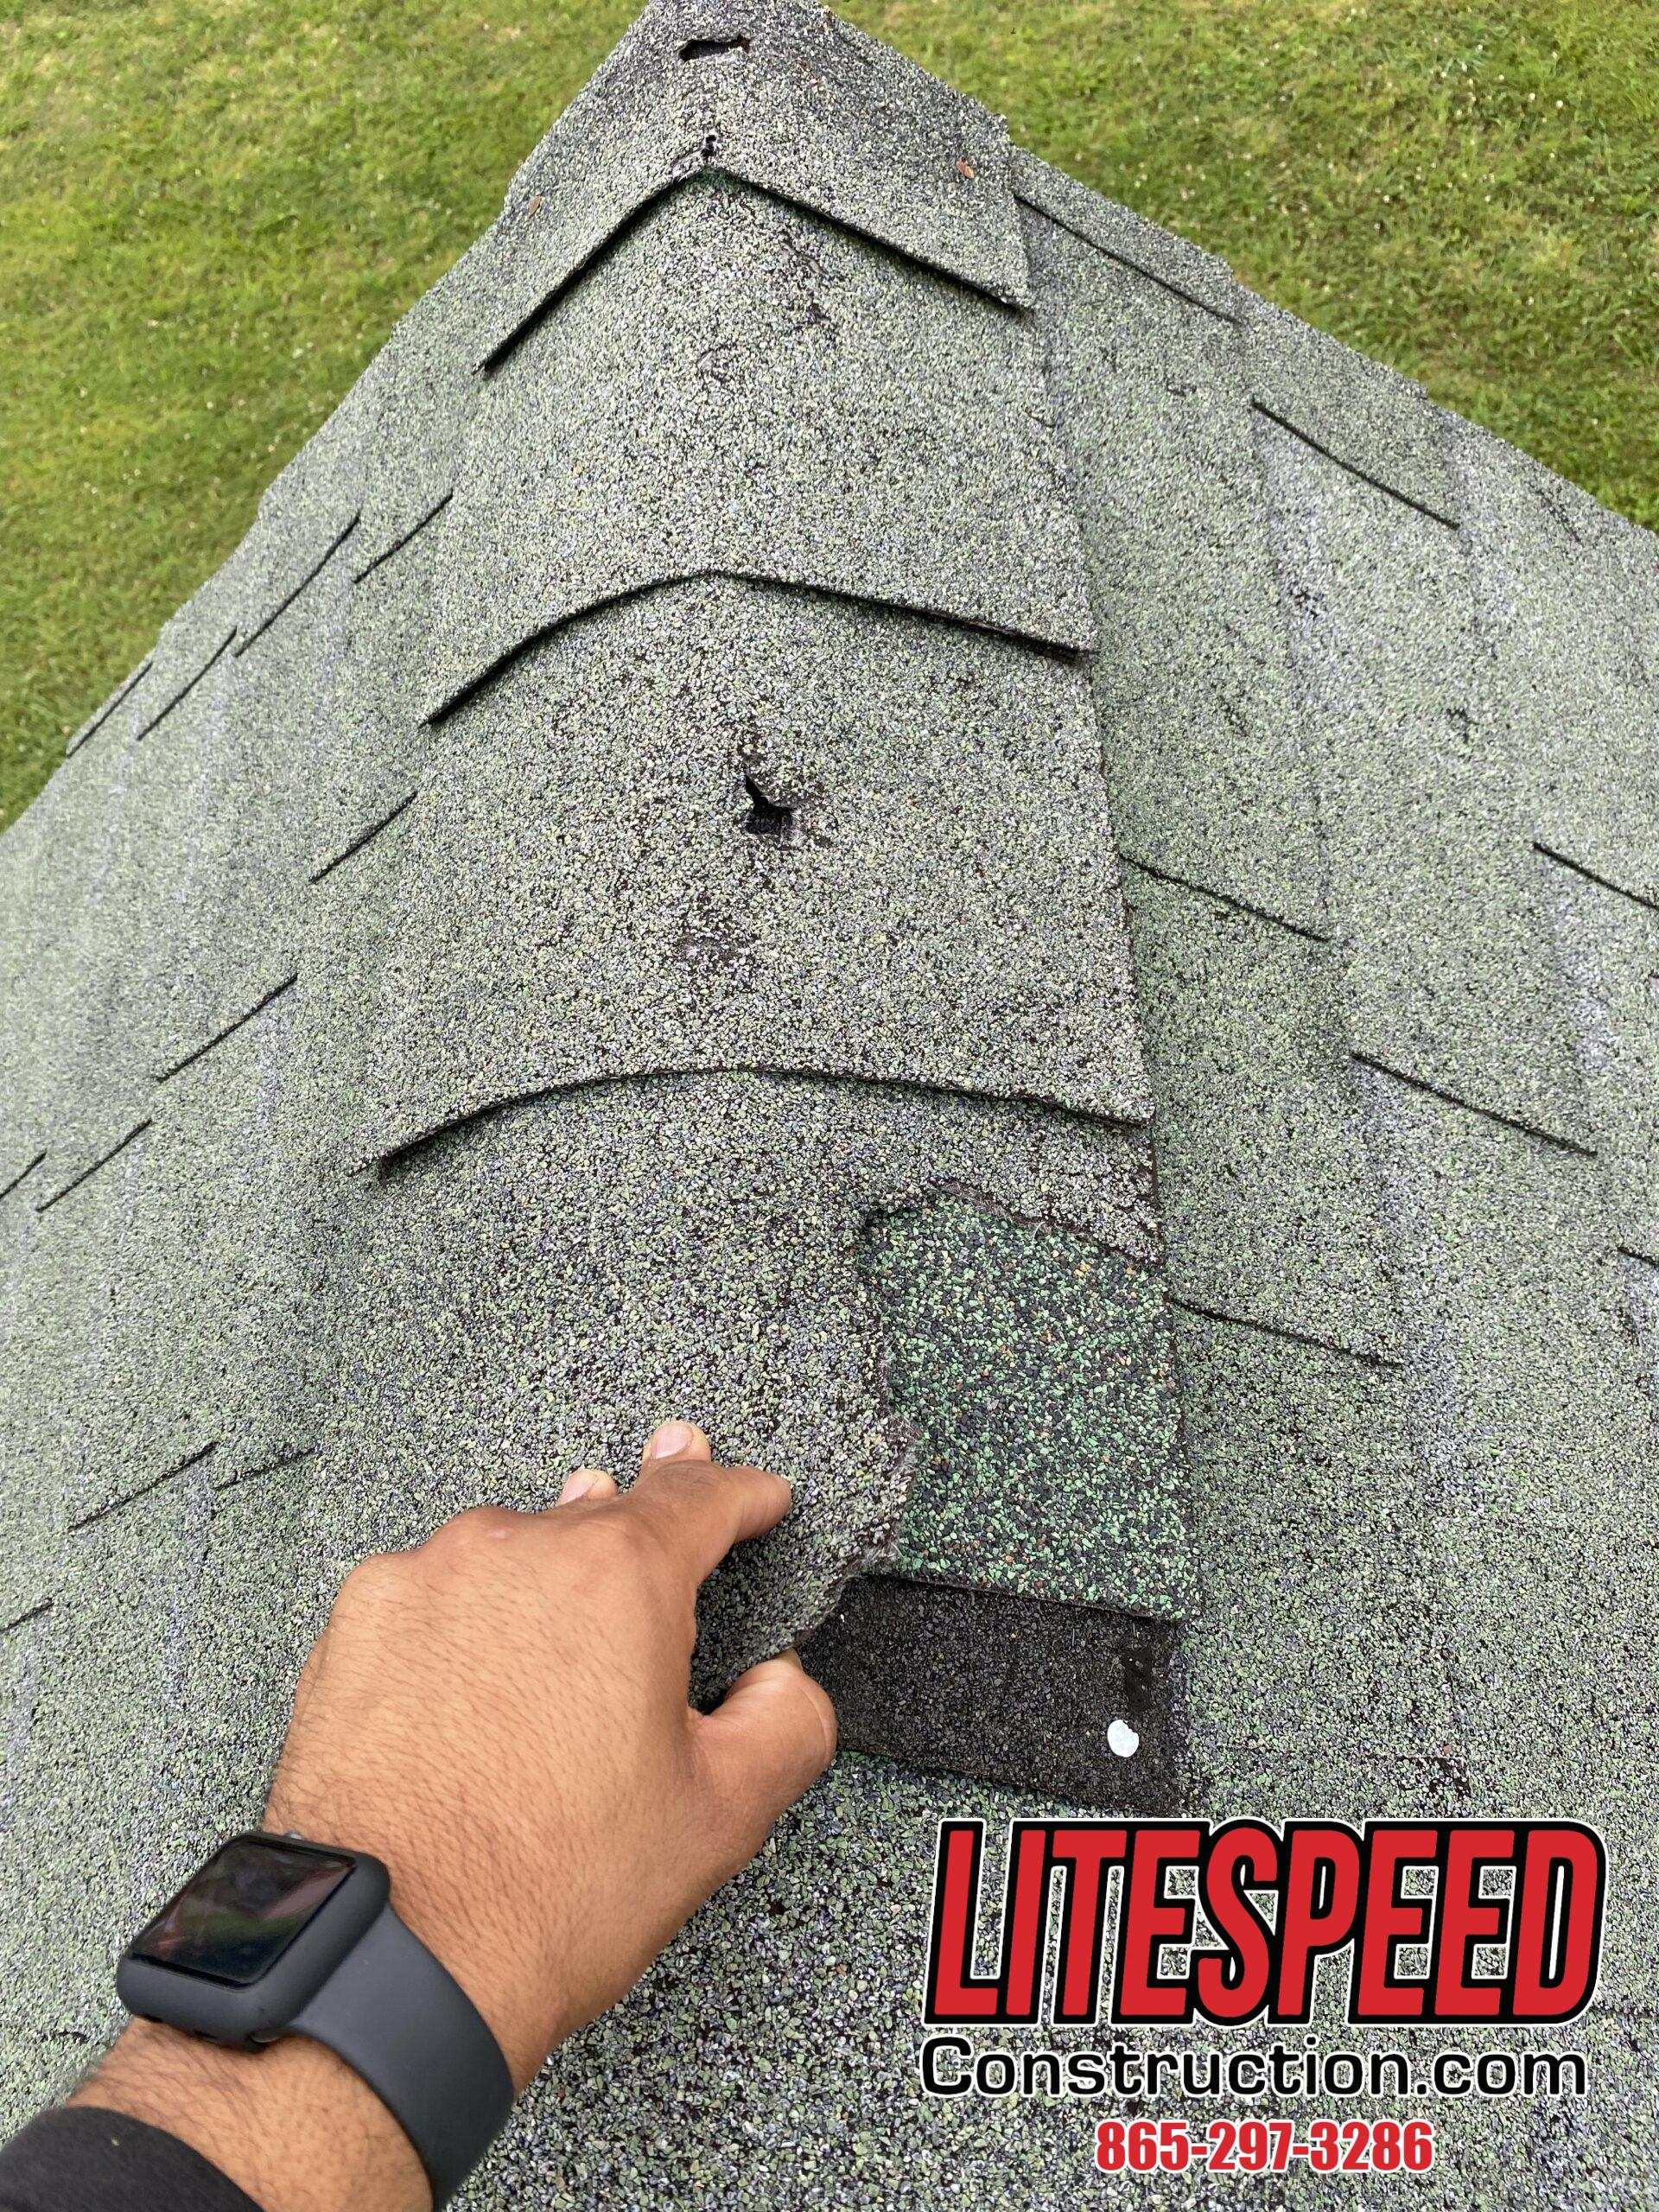 This is a picture of a green ridge cap shingle that is broken